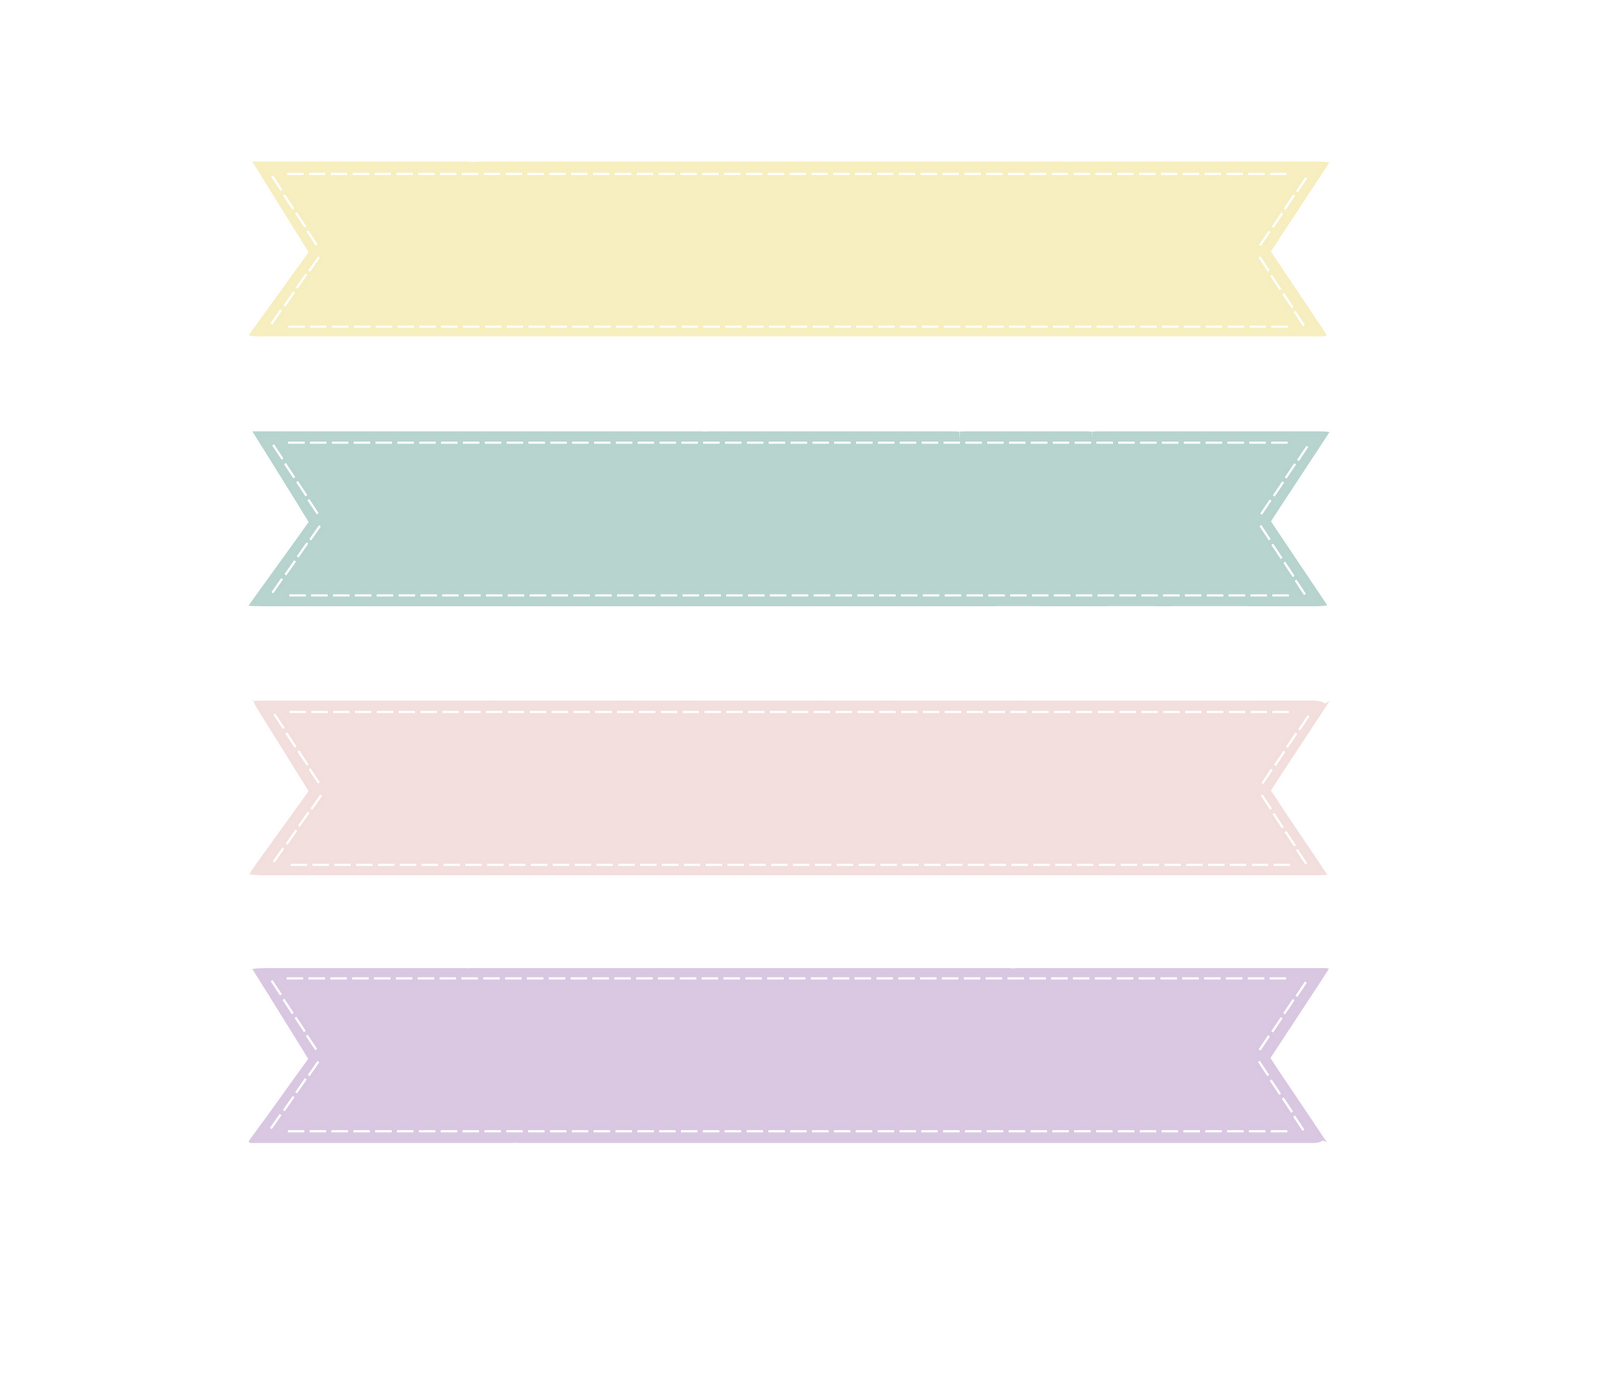 Photoshop clipart banner Pastel Loveration: Pastel Cute Art